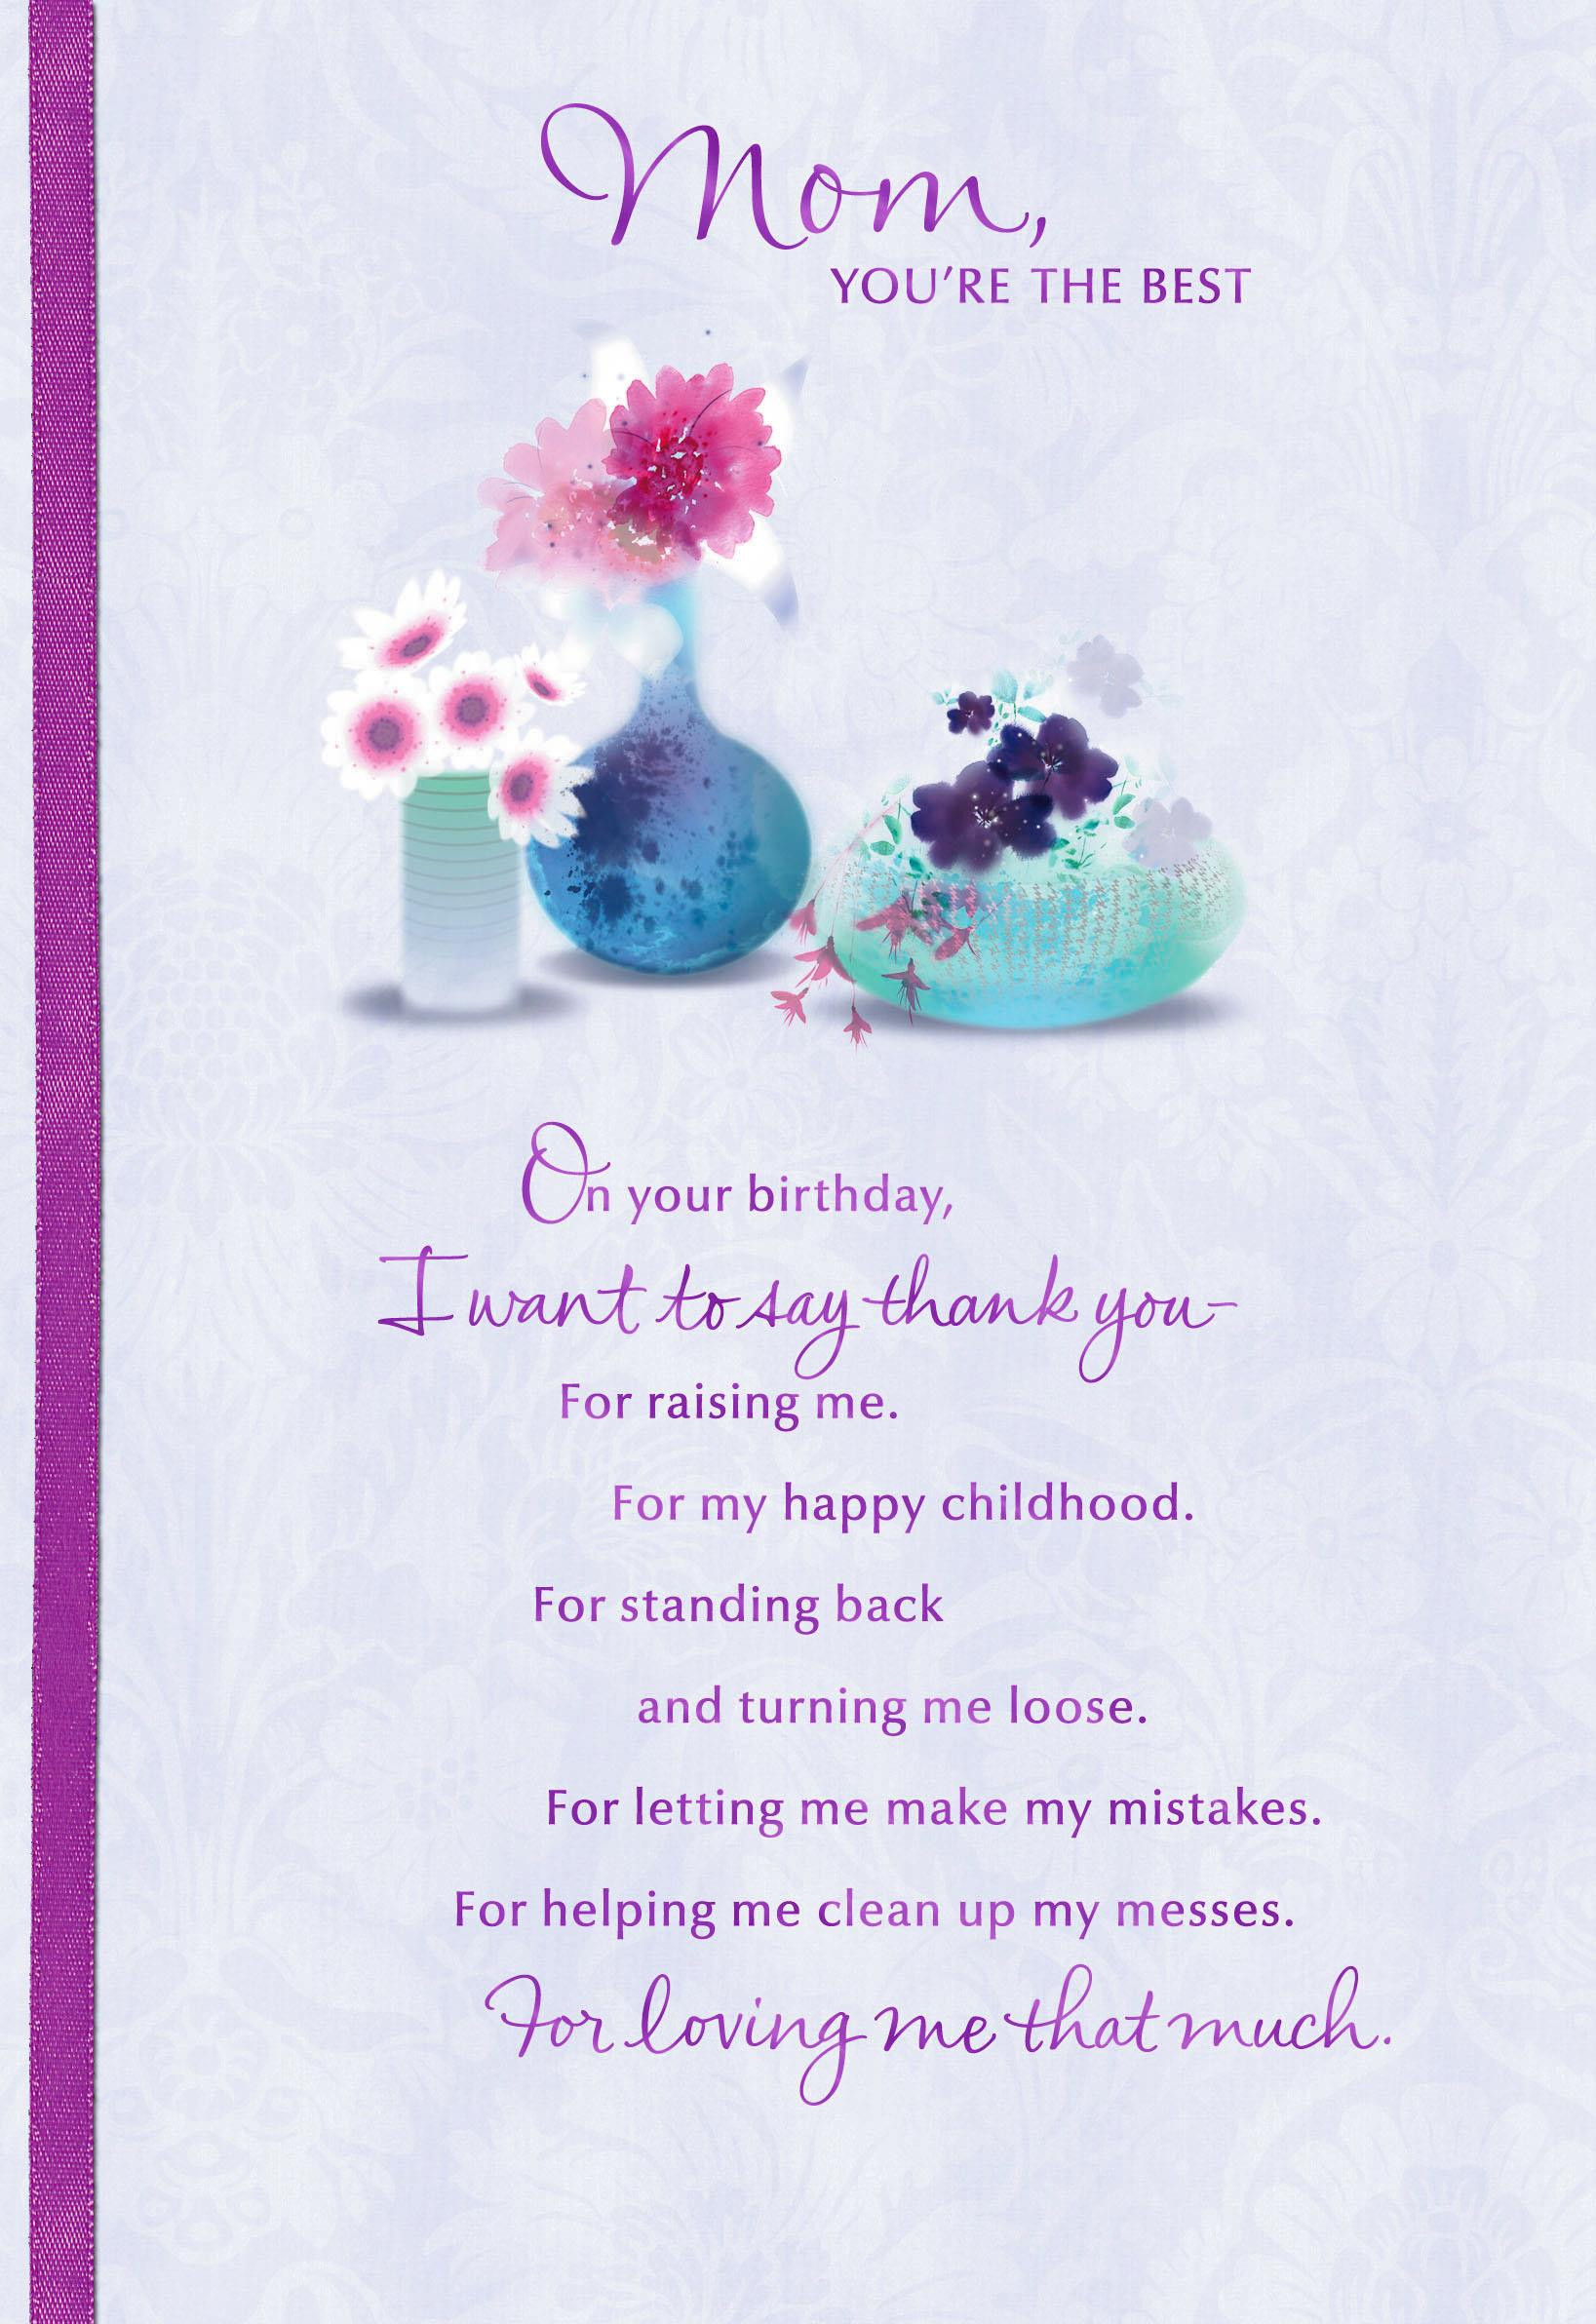 mom you're the best birthday card  greeting cards  hallmark